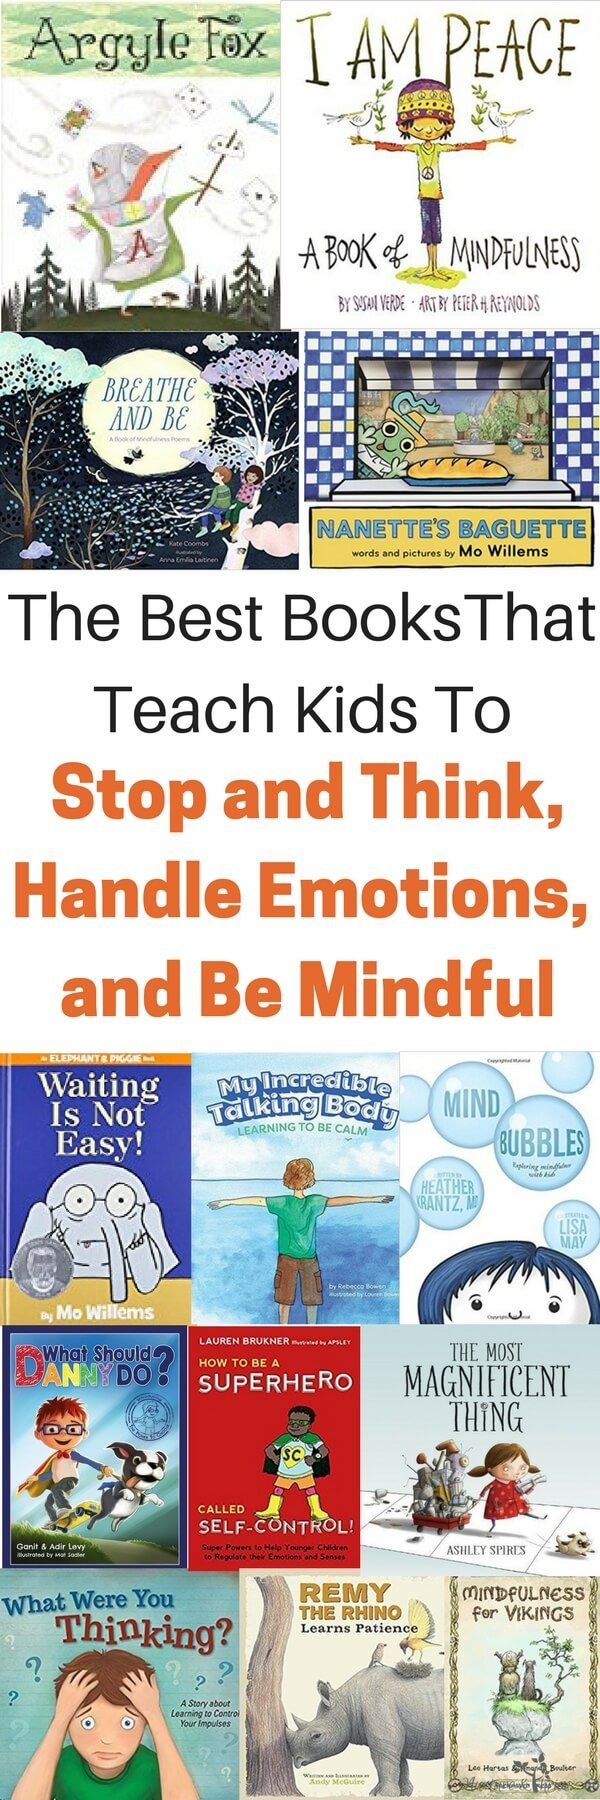 Connect with kids. Books to teach kids self-control and self-regulation skills.